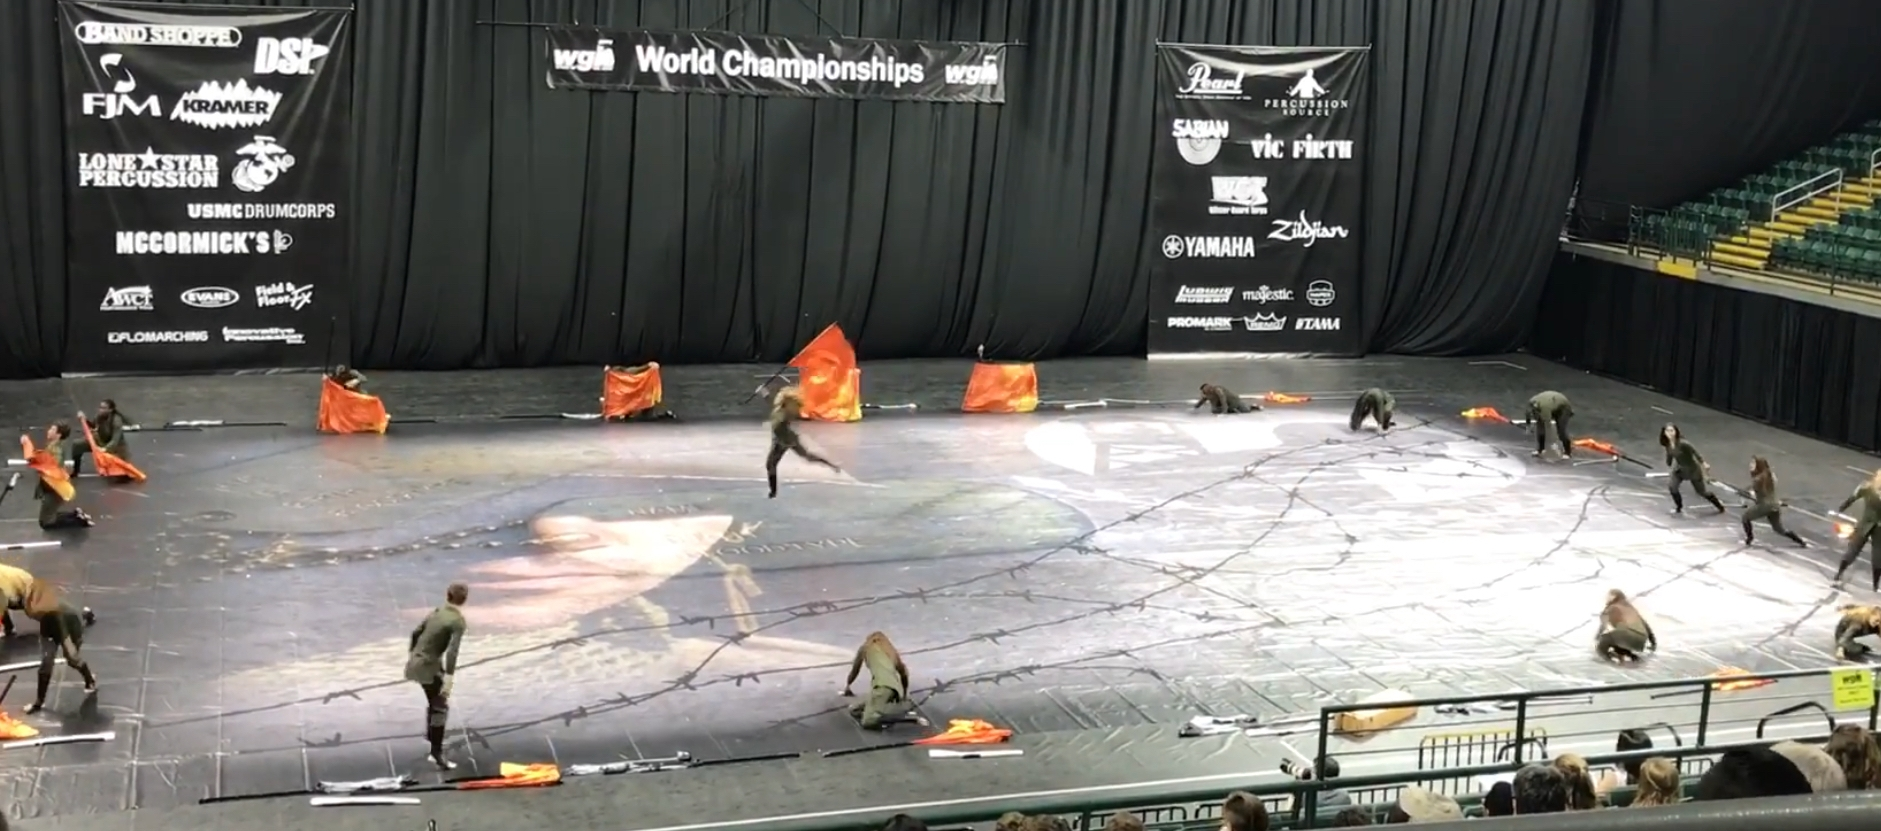 - STRYKE Winterguard (SWG) 2017 Show floorPrice: $1,000Size: 55x80 FeetAvailable for pick up in Hollywood, FL. Freight quotes available upon request.Contact dyunis@stryke.org to purchase or for more information.